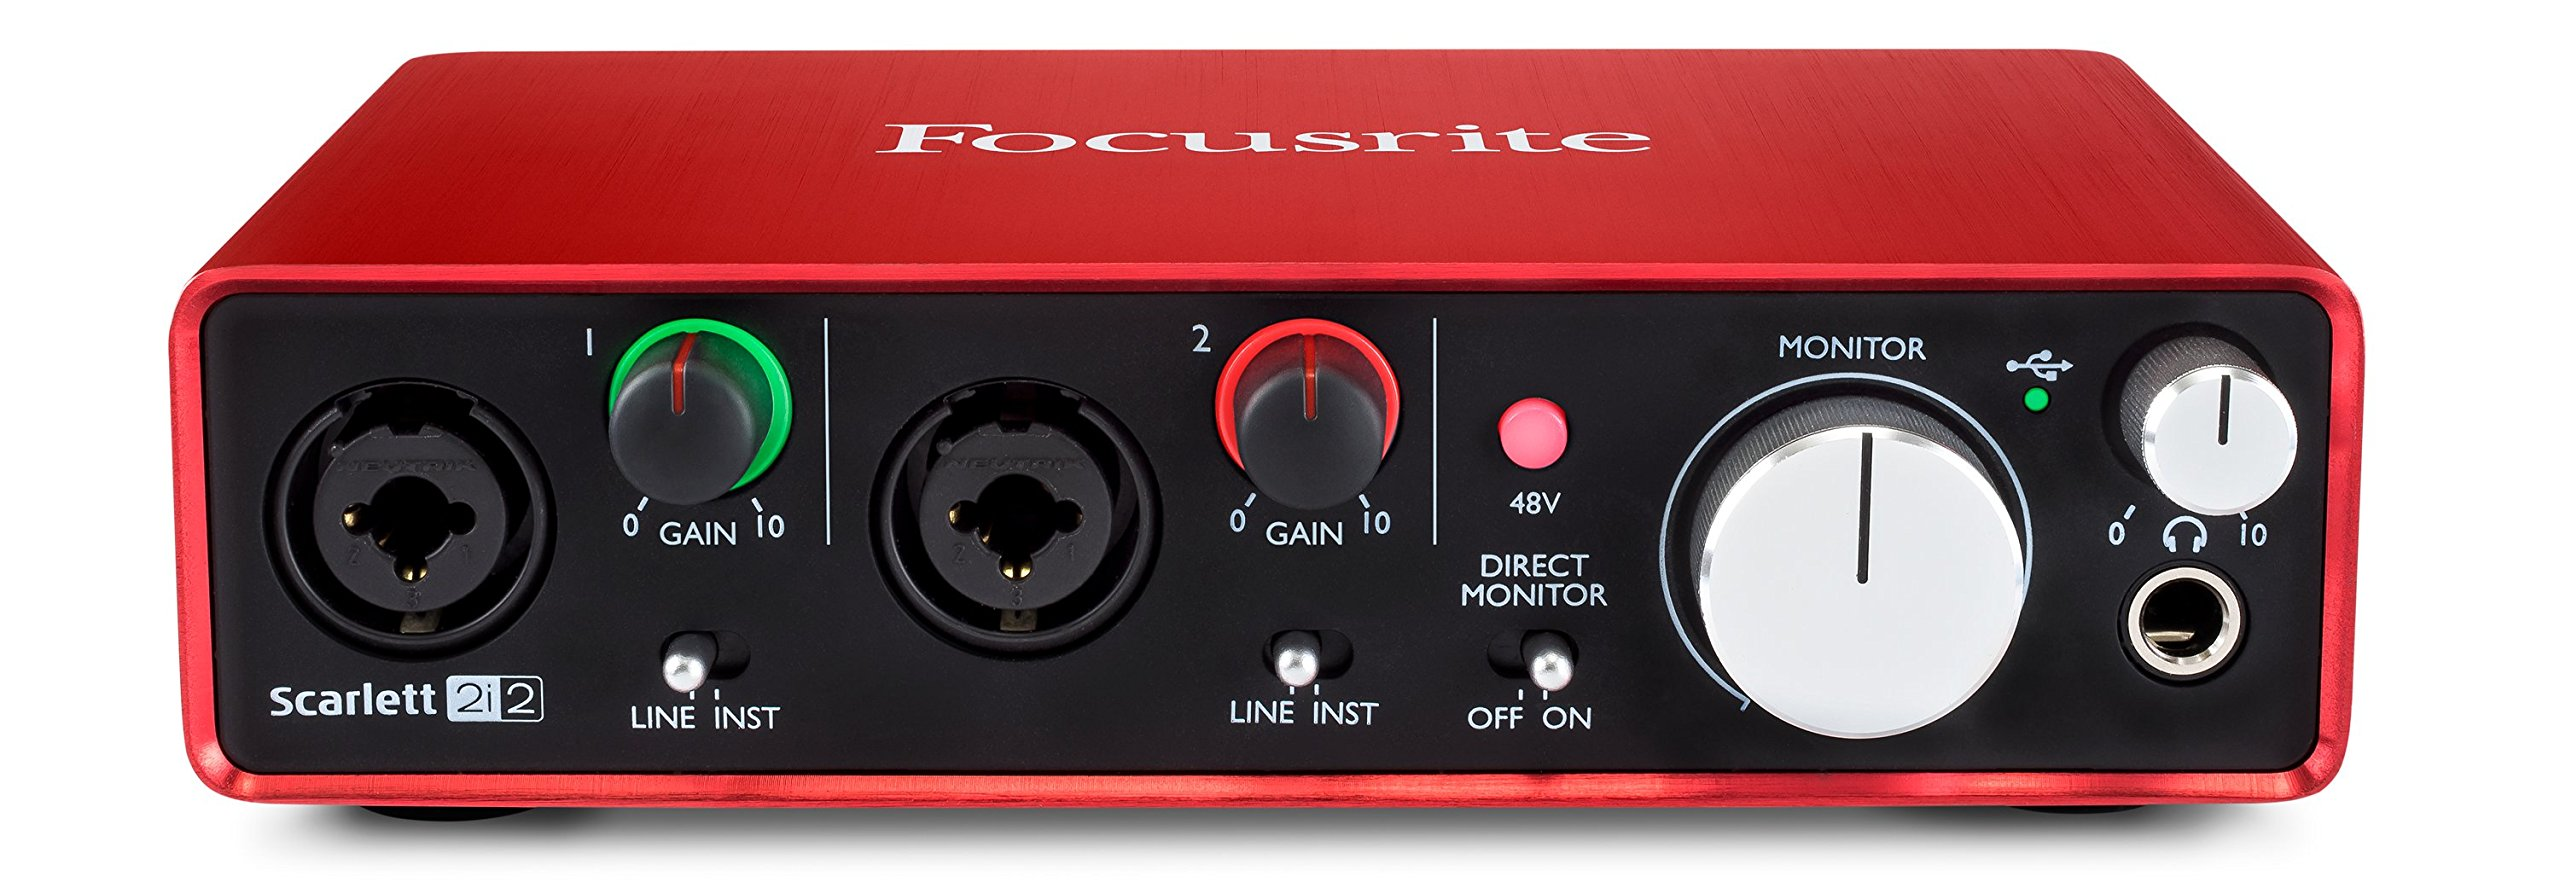 Focusrite Scarlett 2i2 (2nd Gen) USB Audio Interface with Pro Tools | First by Focusrite (Image #2)